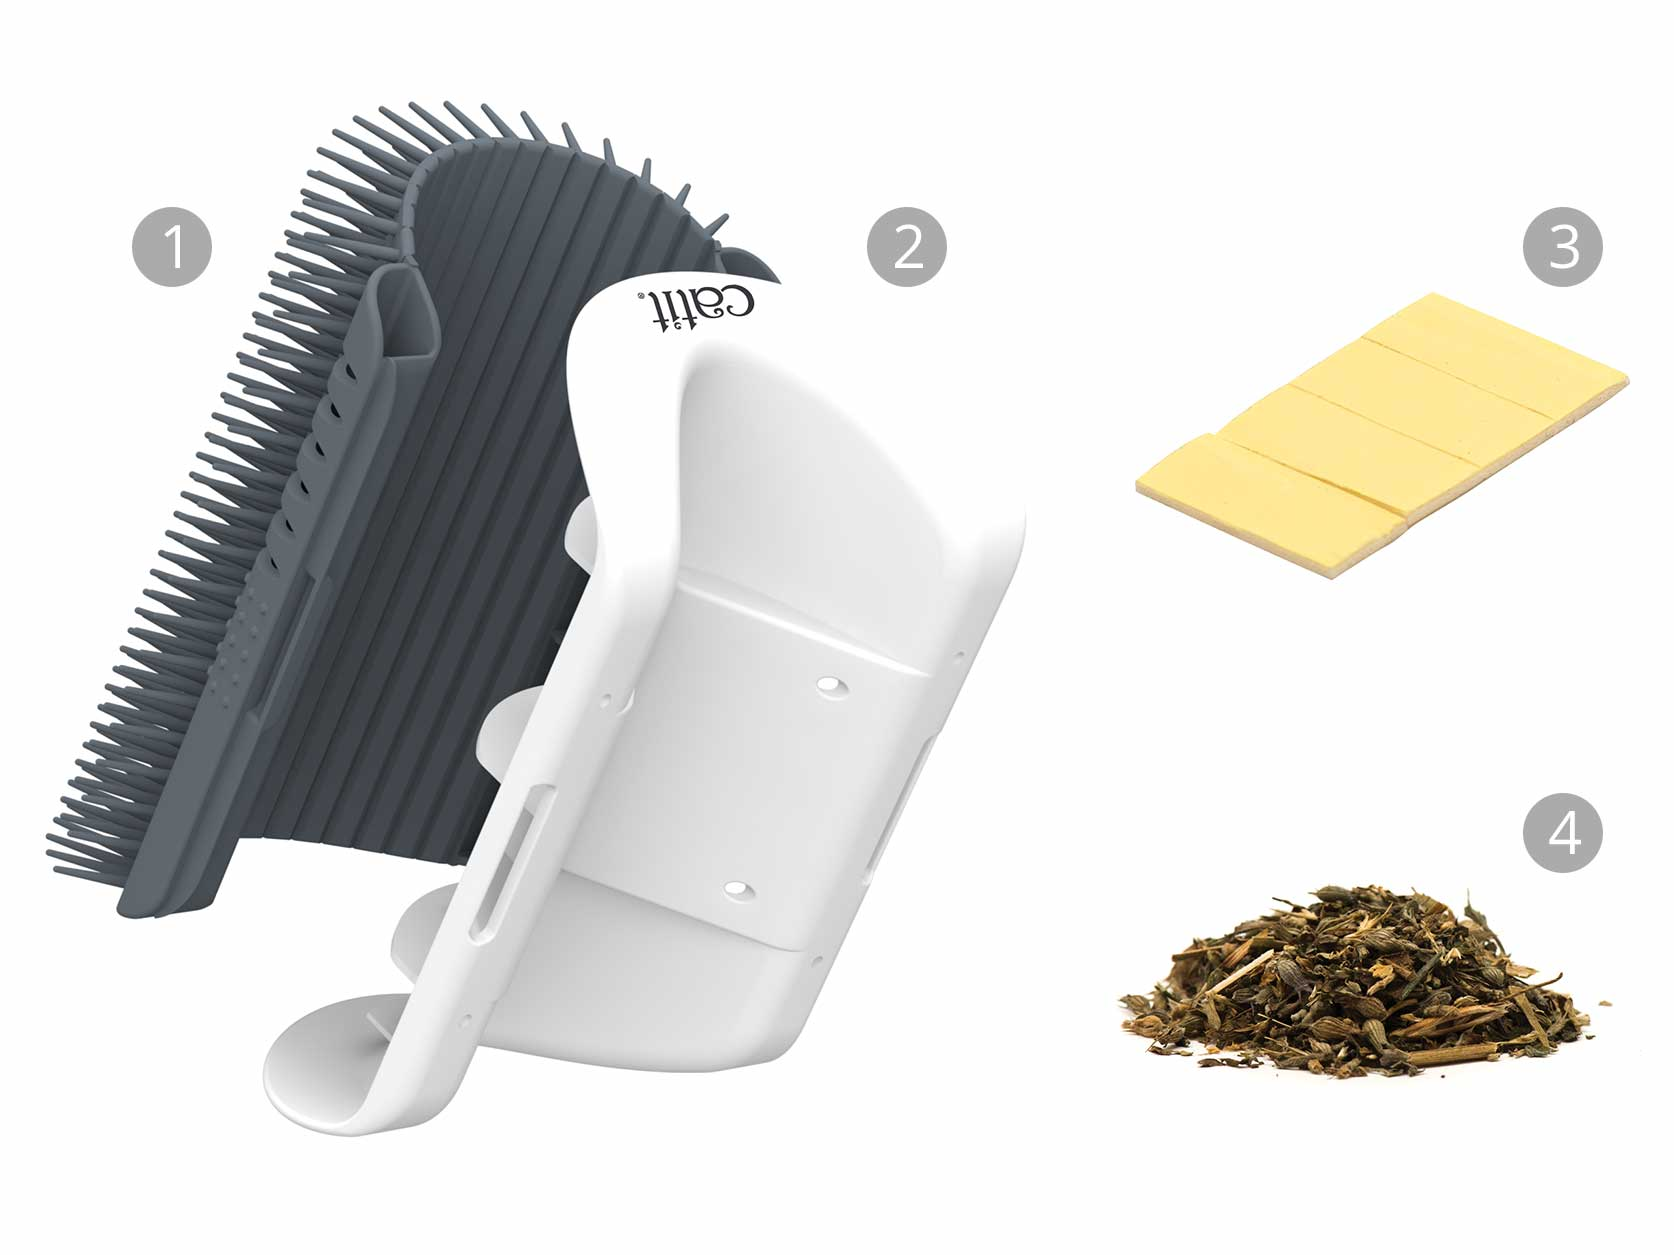 All parts of the Senses 2.0 Self Groomer with catnip